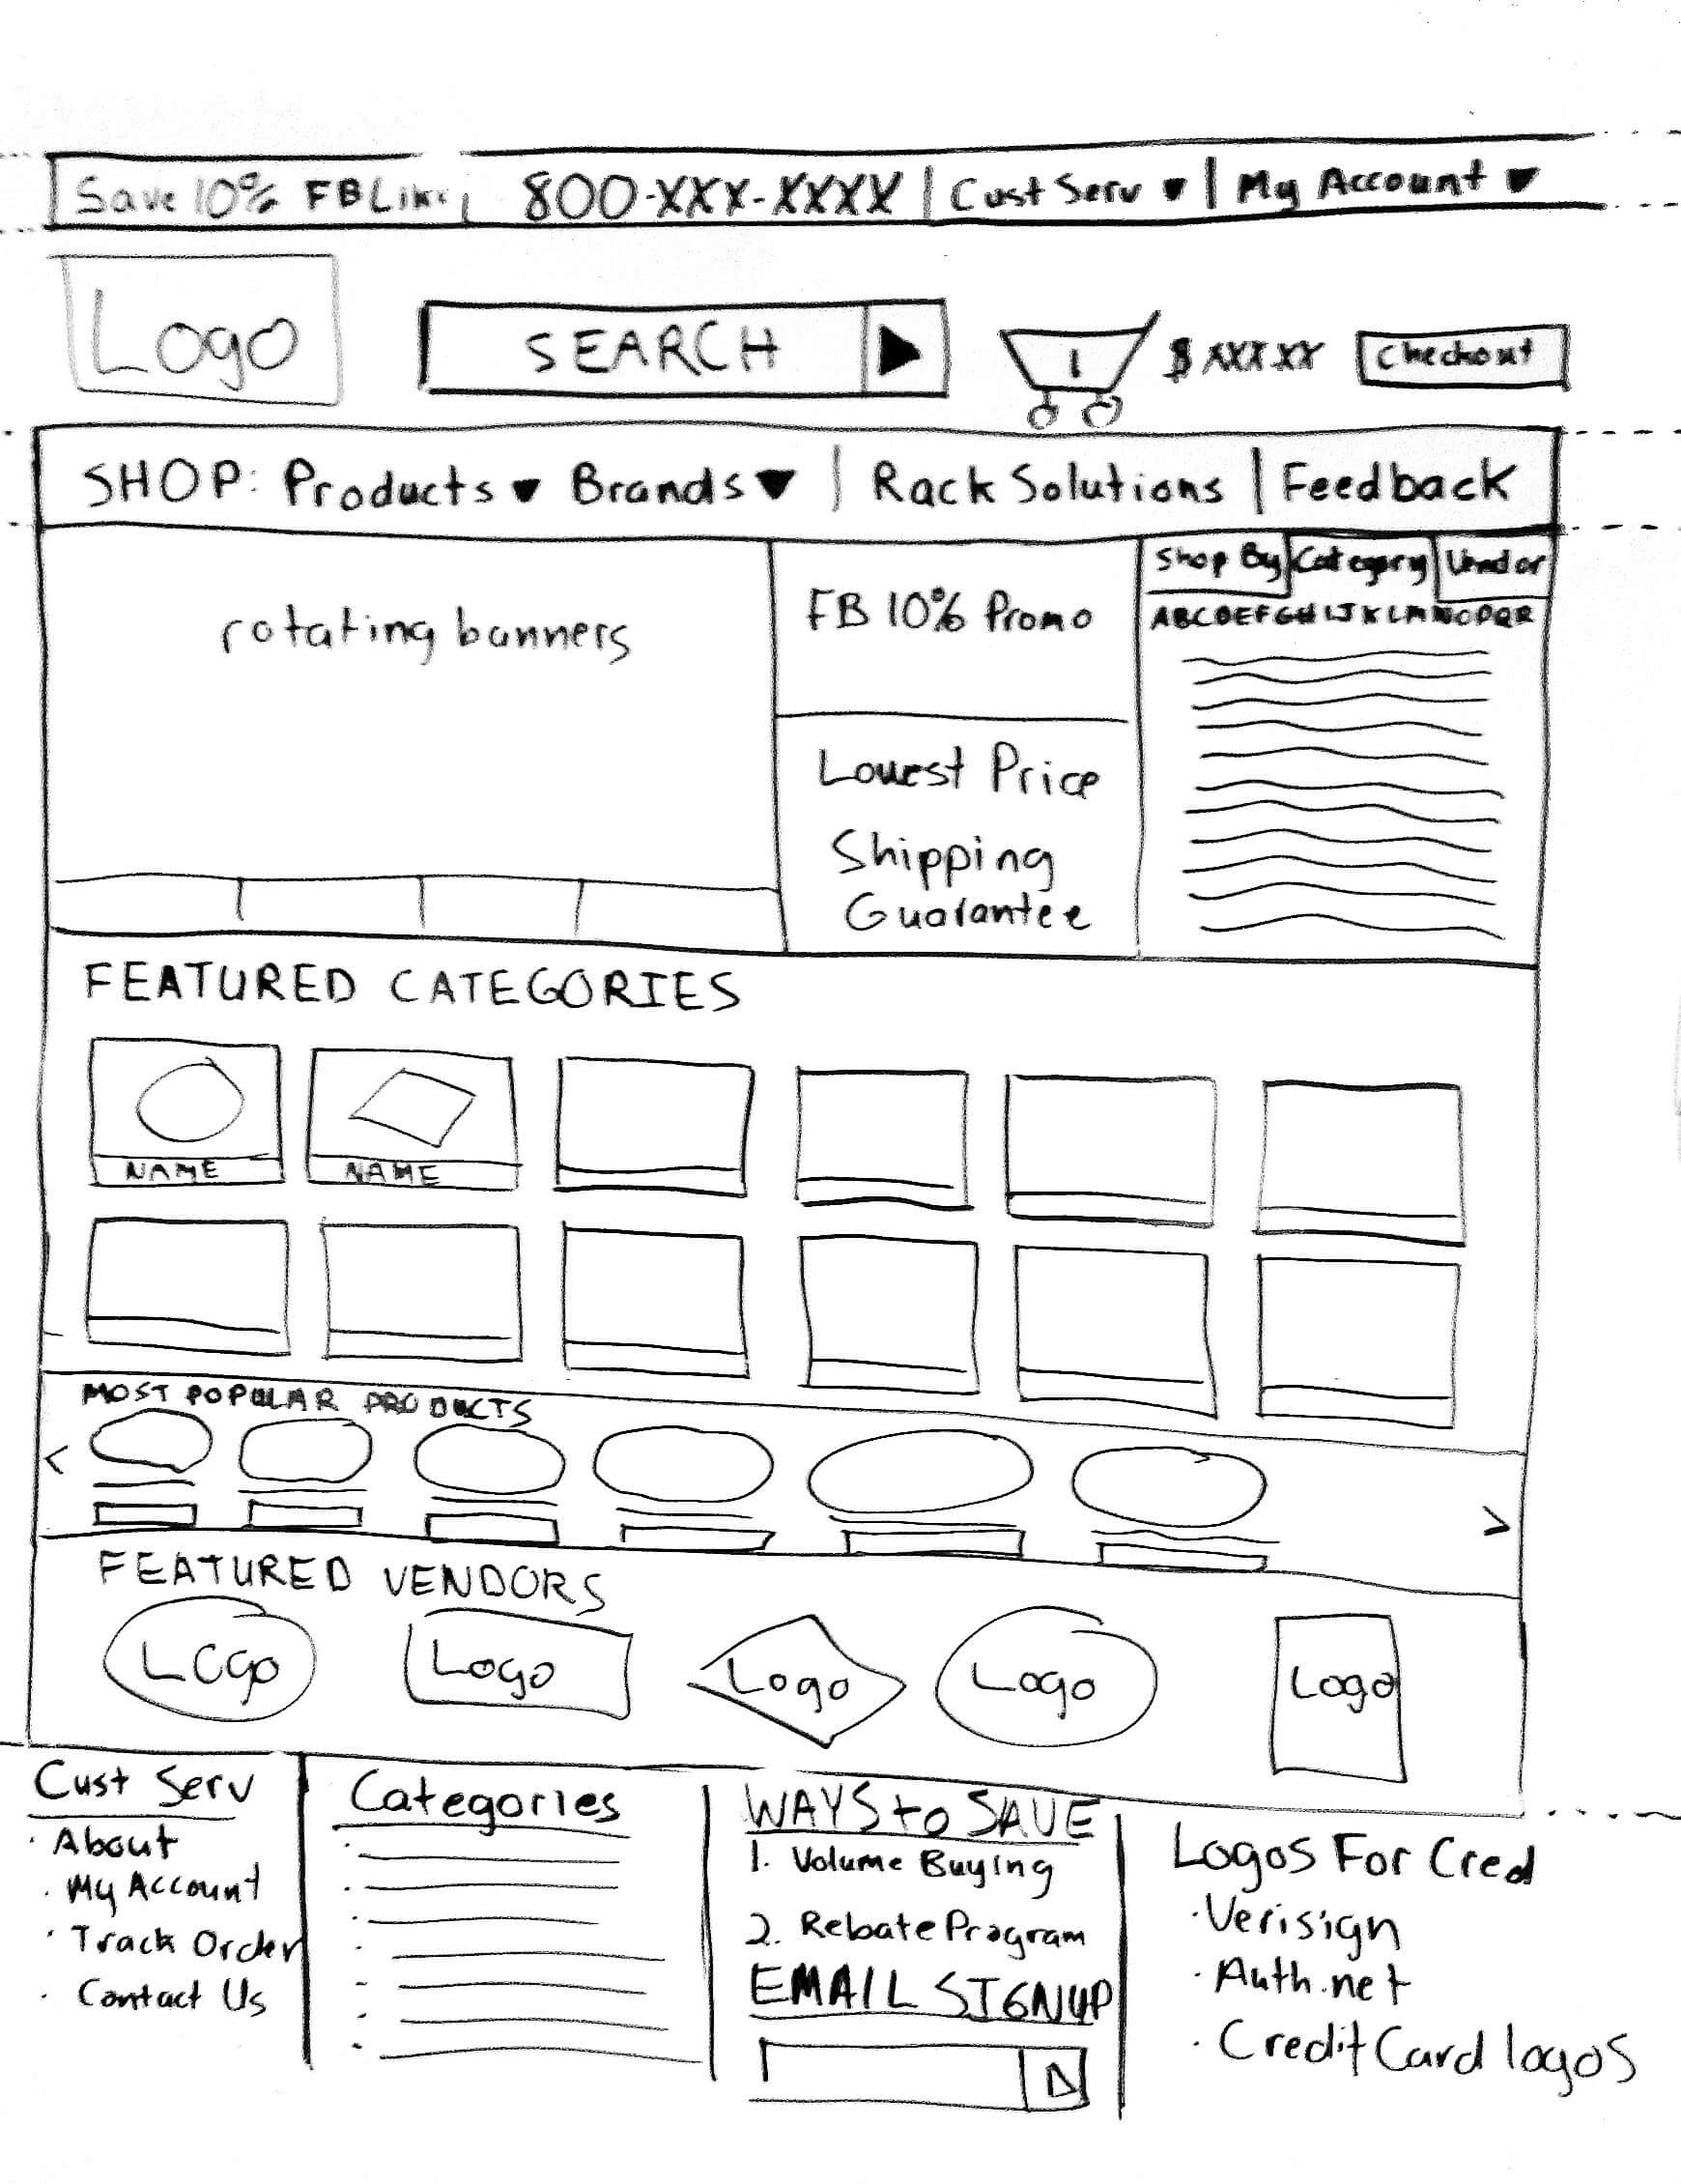 Rough wireframe for web design